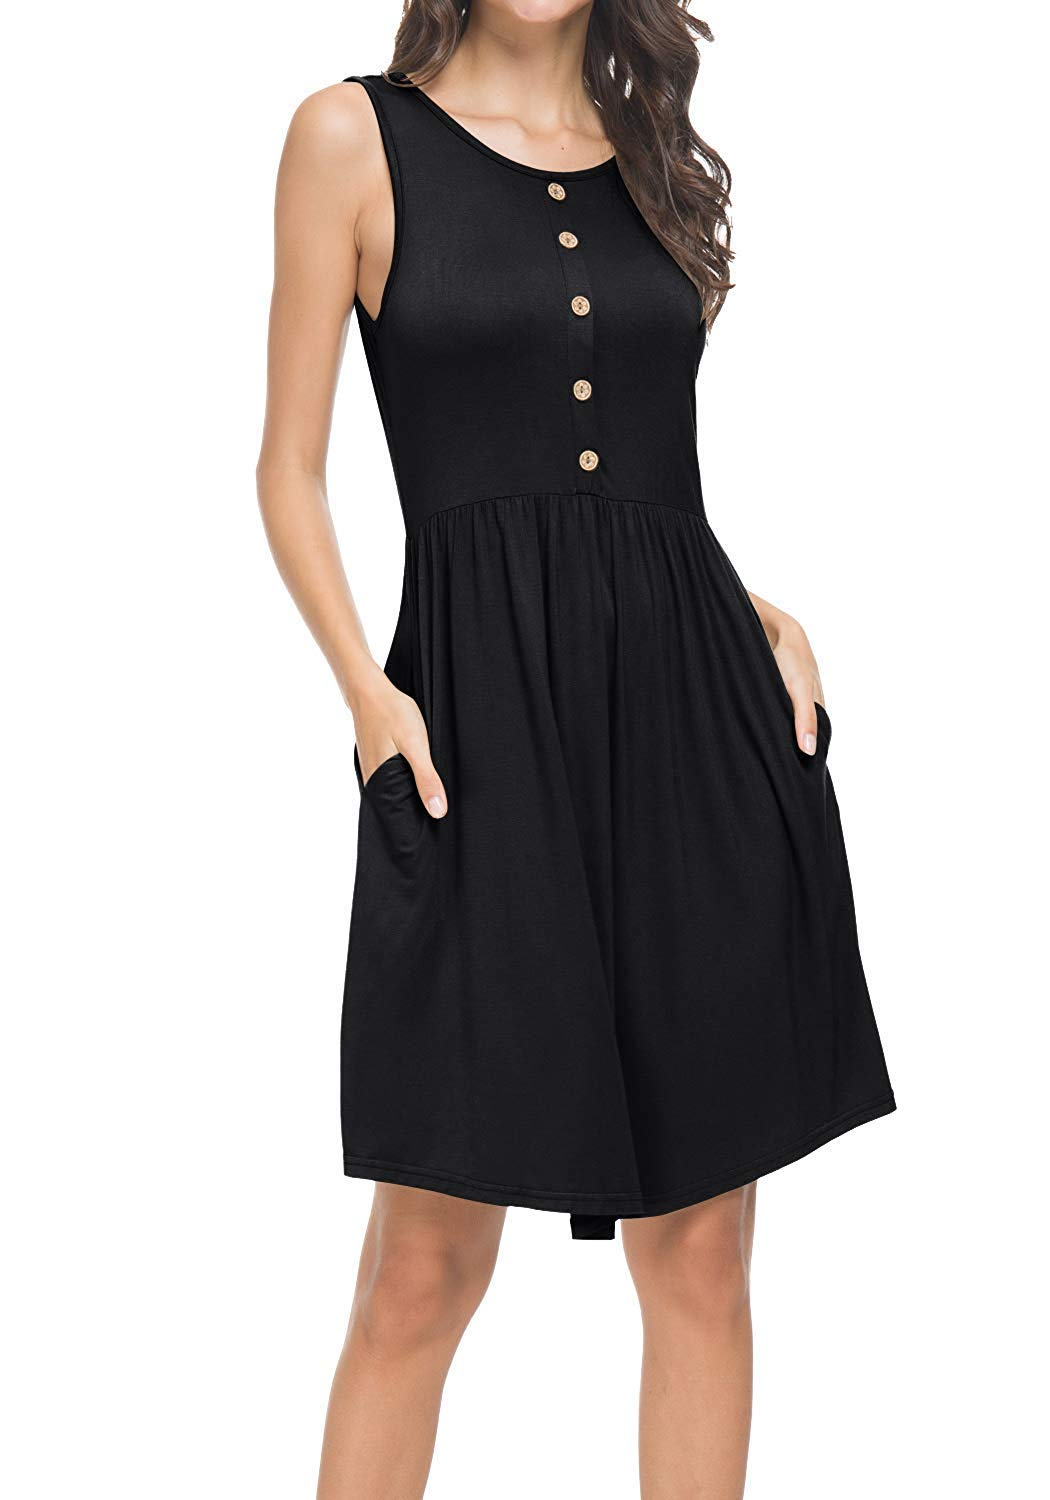 Great little black dress! Love the pockets!